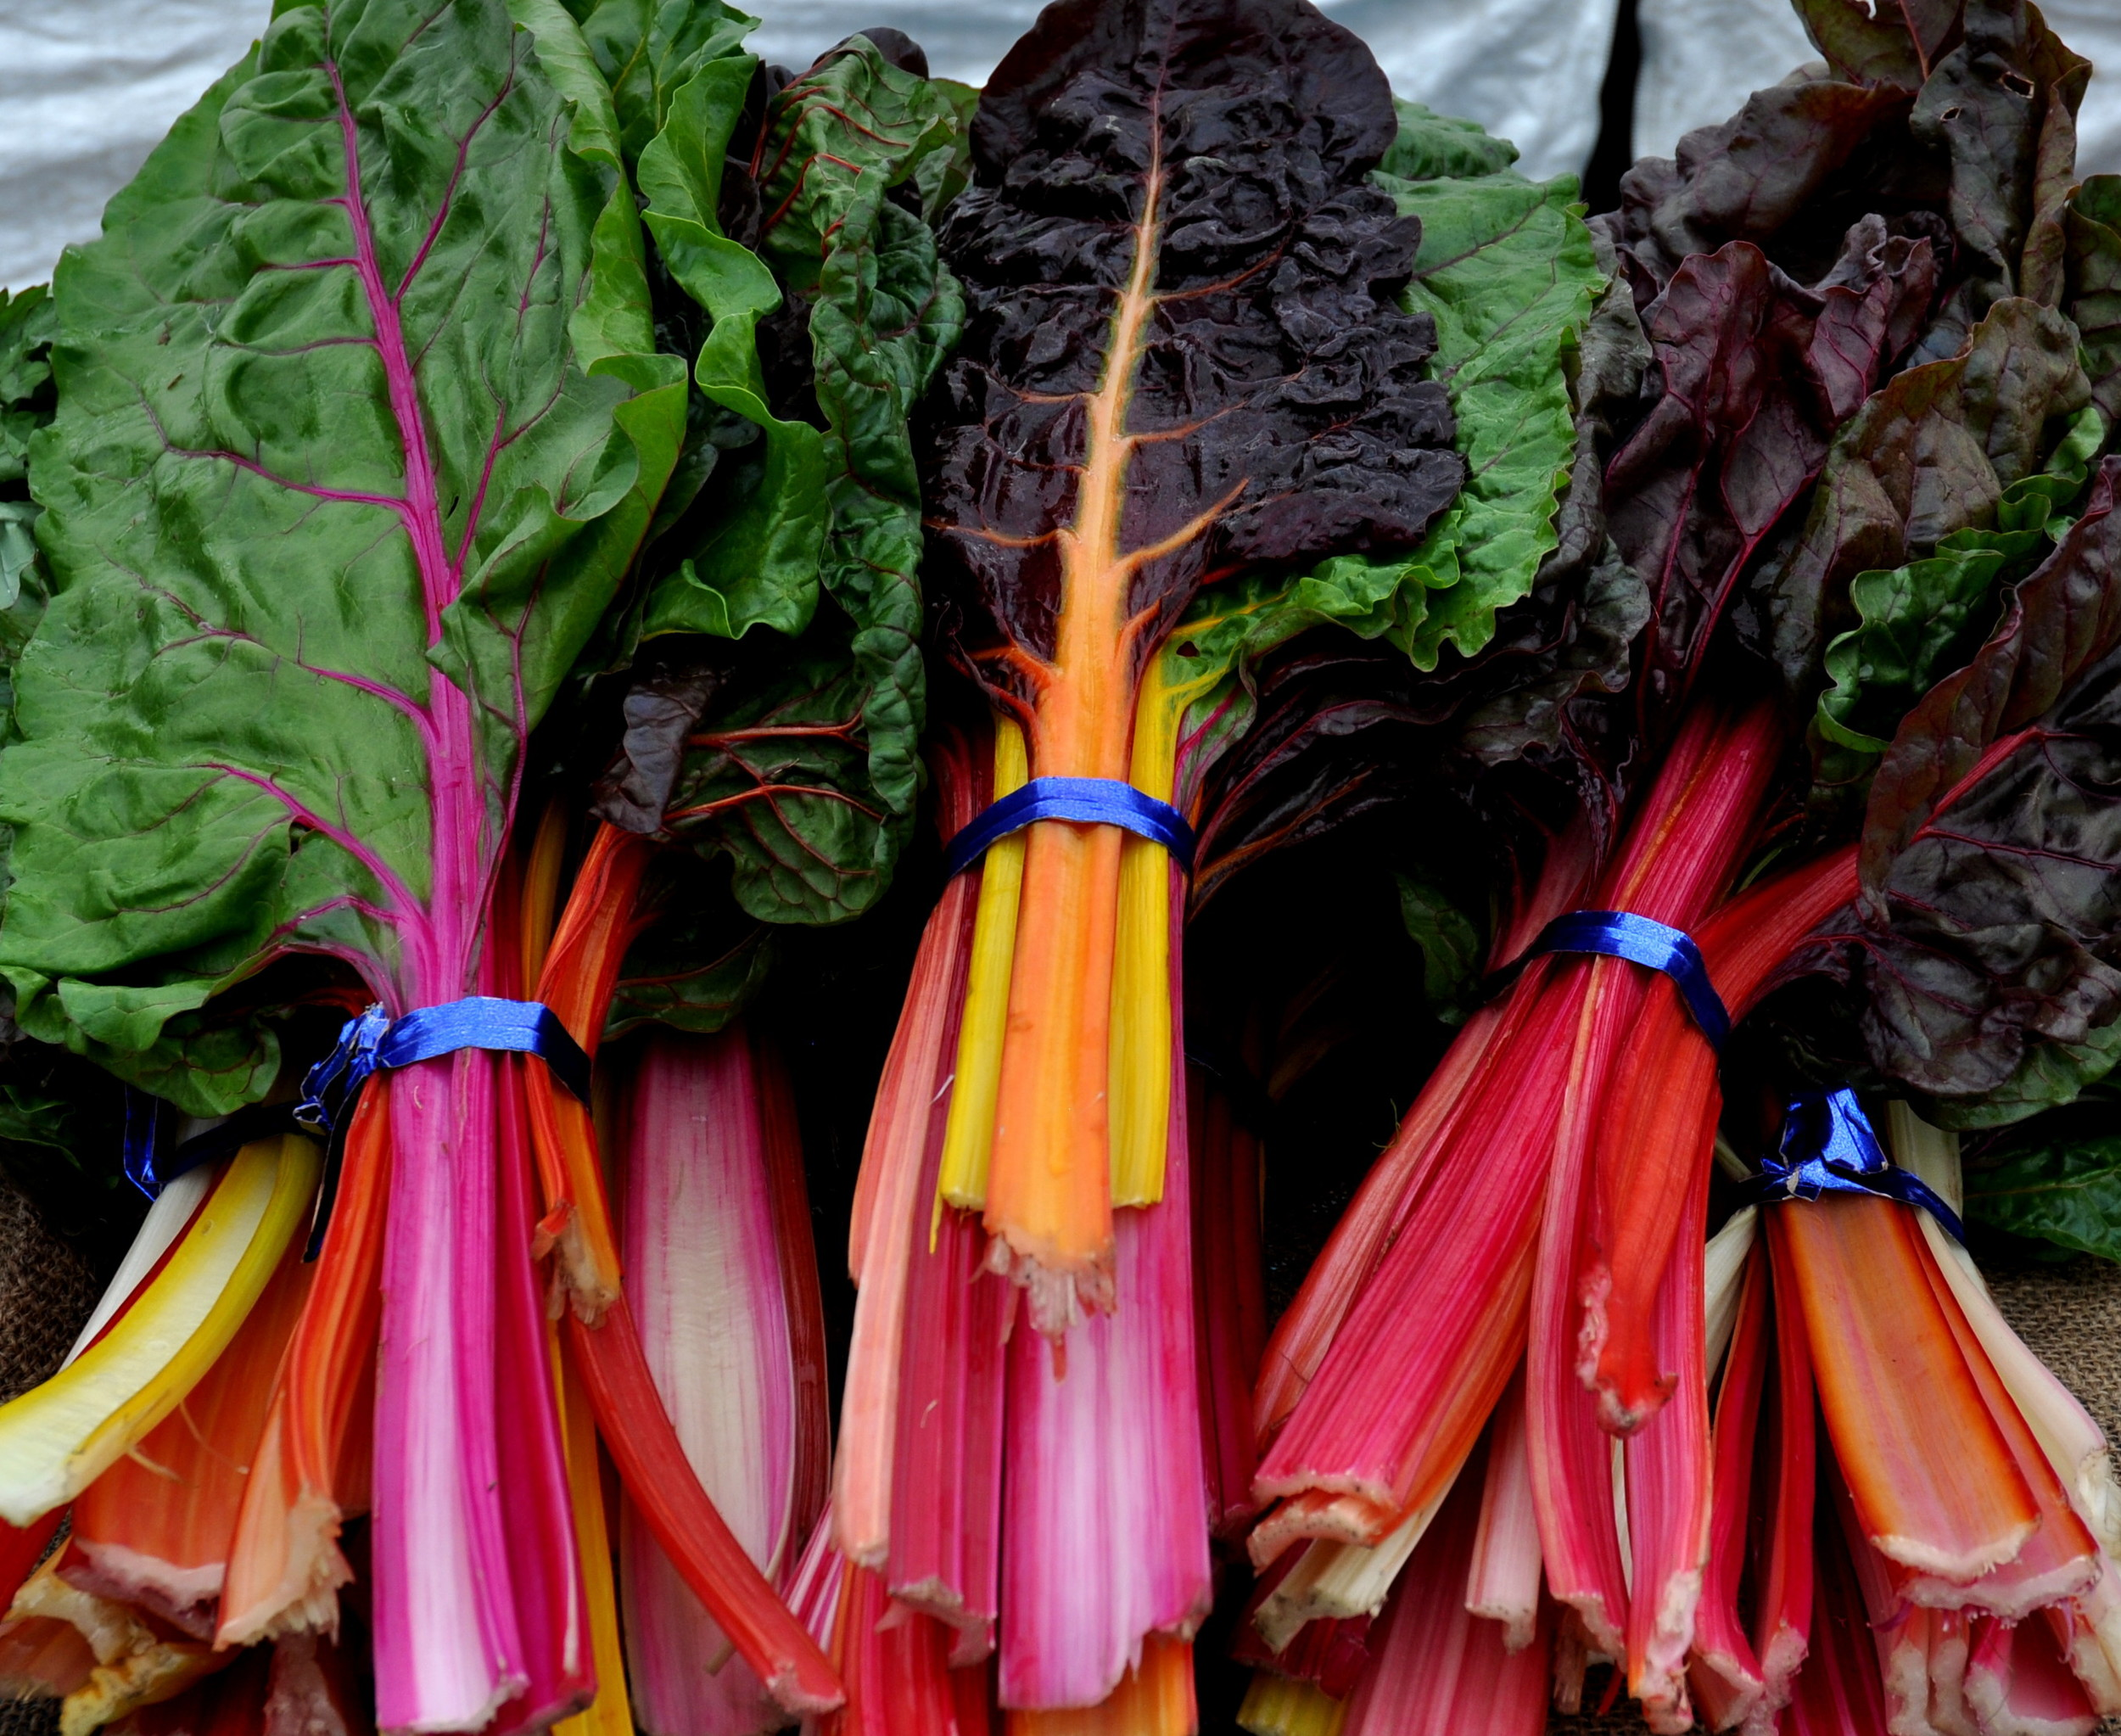 Rainbow chard from One Leaf Farm. Photo copyright 2014 by Zachary D. Lyons.